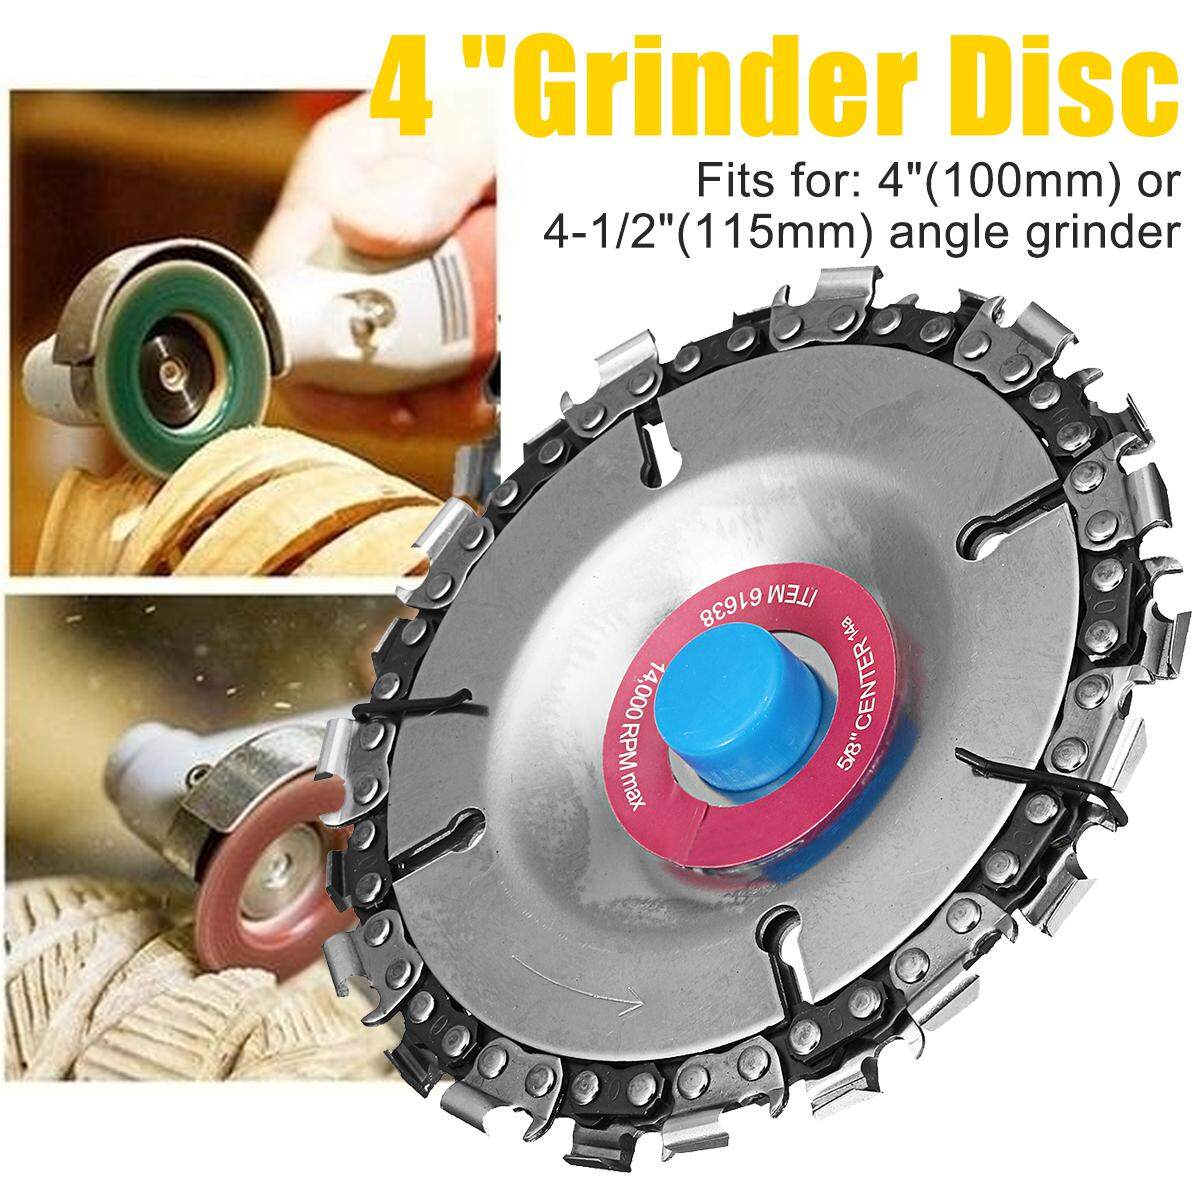 4 Inch Grinder Disc And Chain 22 Tooth Fine Cut Chain Set for 100/115 Angle Grinders